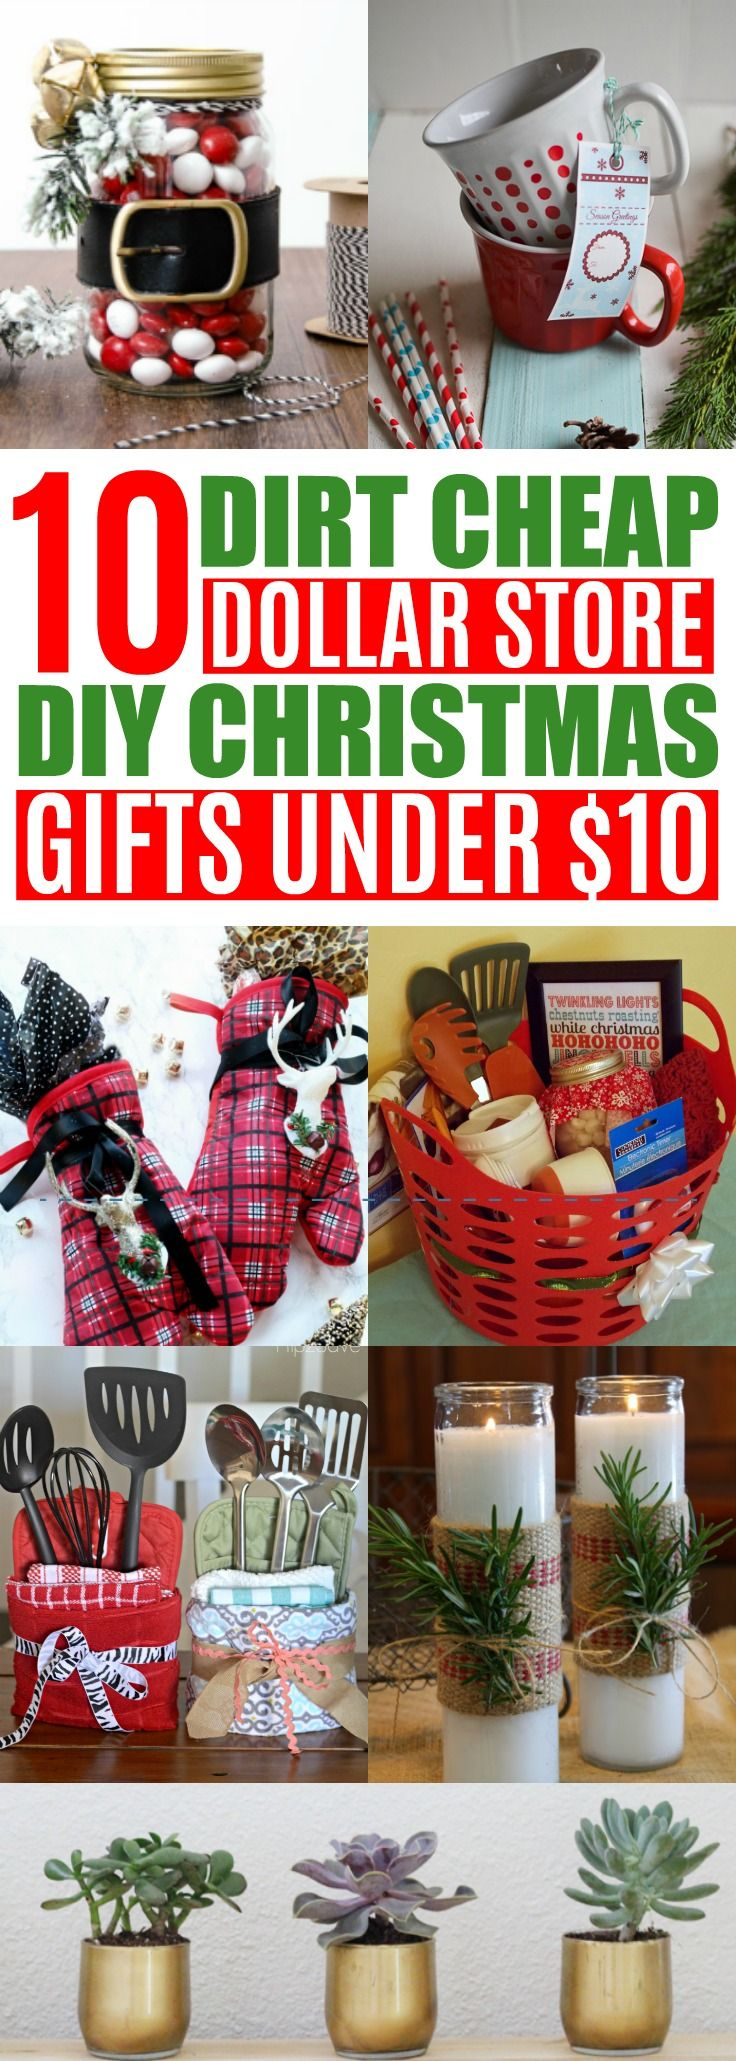 Best 25+ Christmas gift ideas ideas on Pinterest | Gifts ...